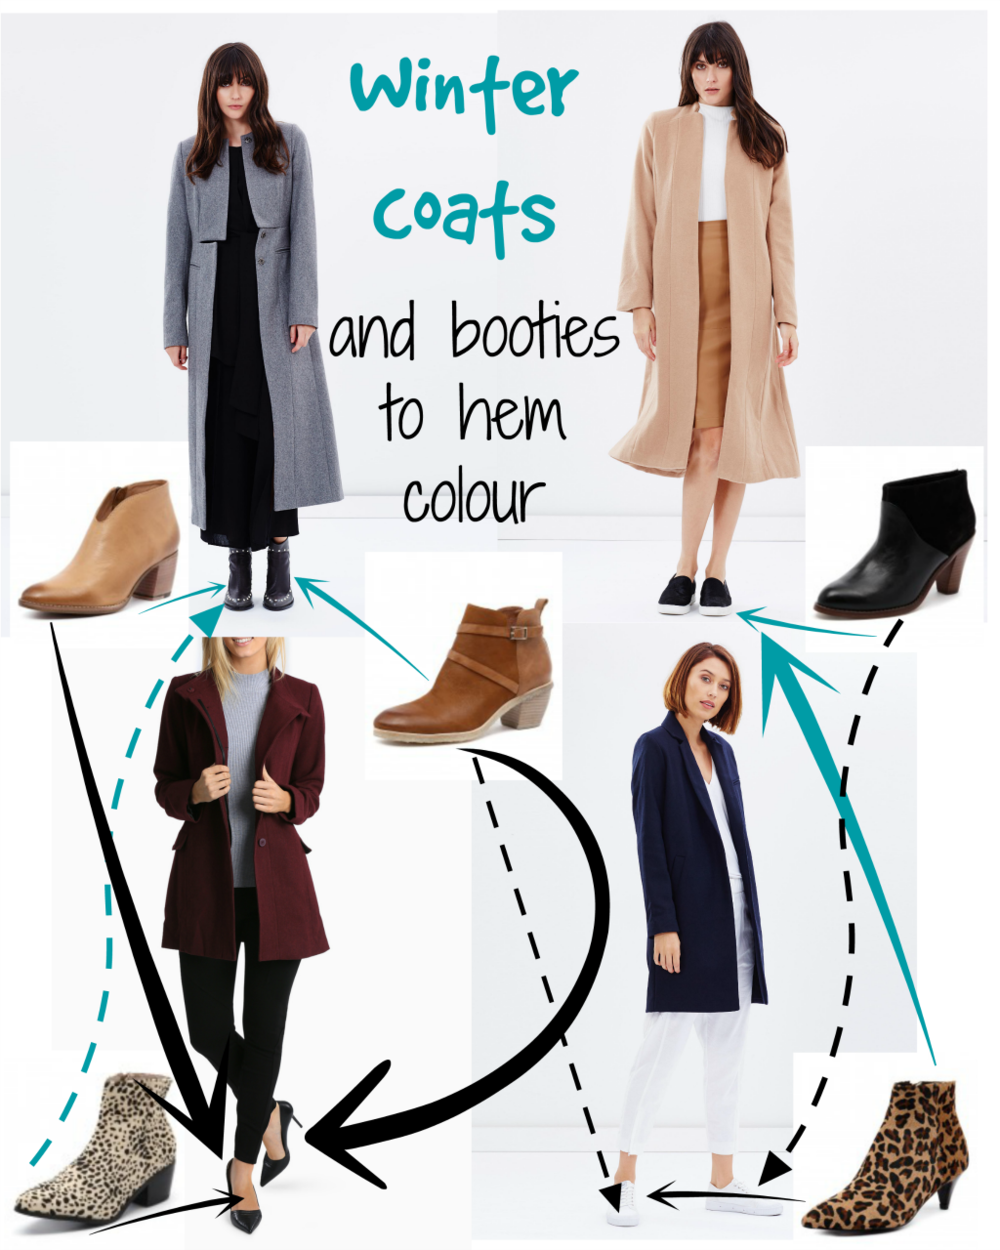 What Booties To Wear with Winter Coats.png